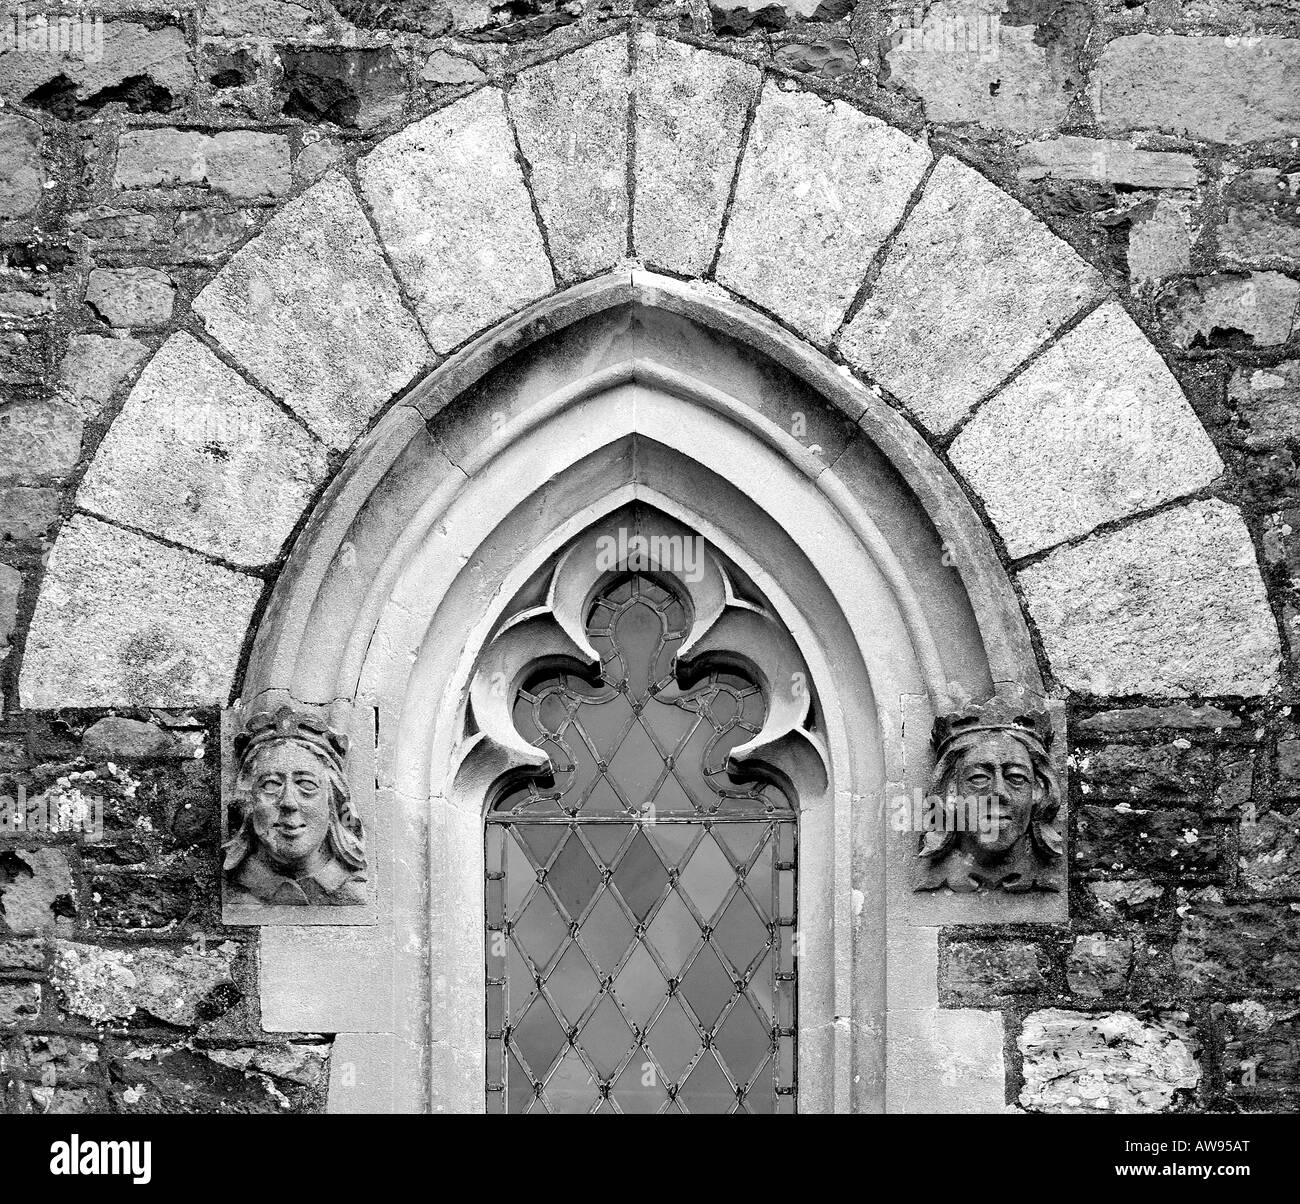 Architectural detail close up of a gothic